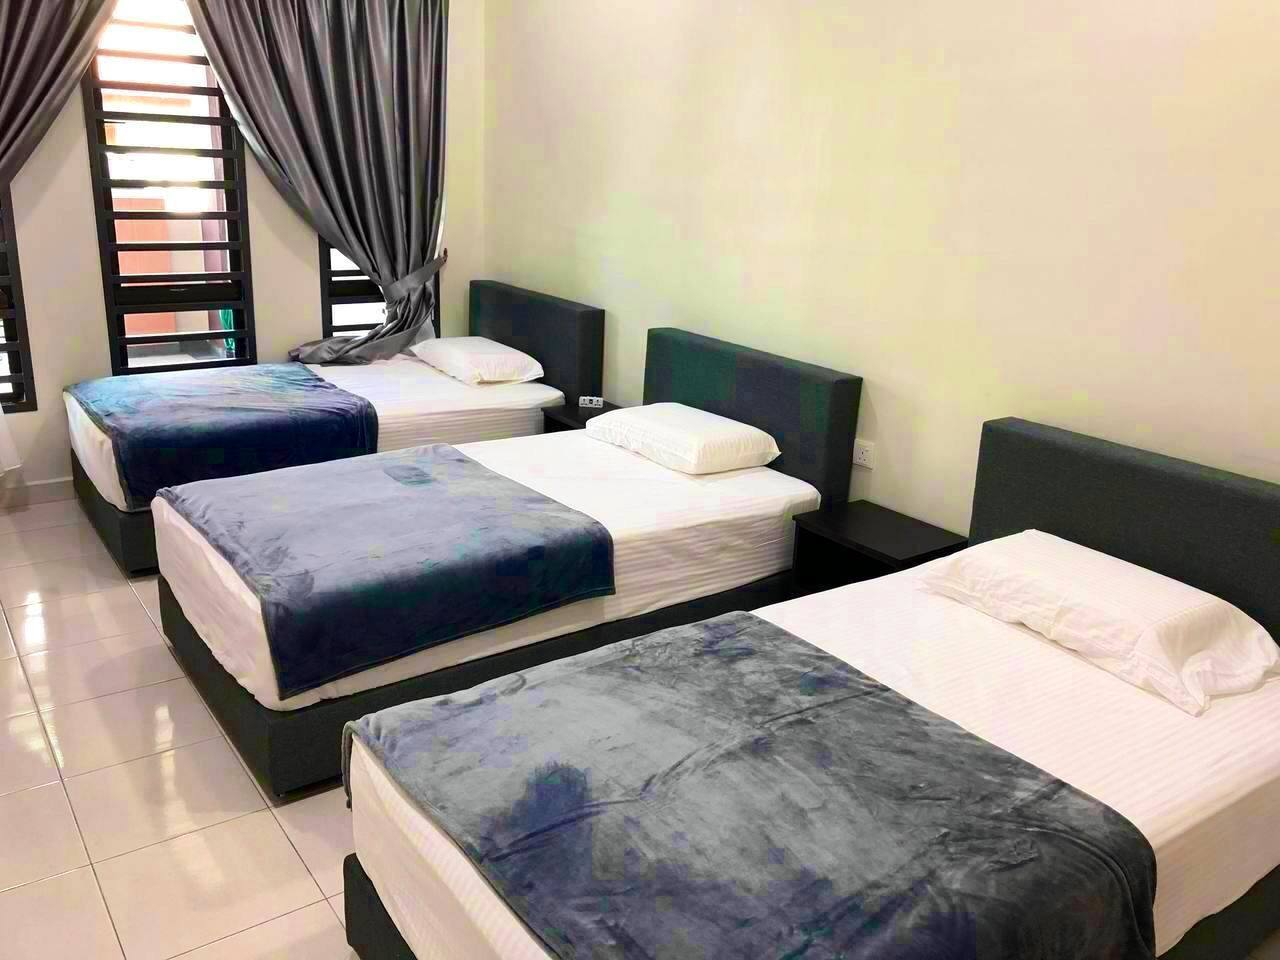 3 super single bed , 5 star hotel pocket spring mattress and latex pillow